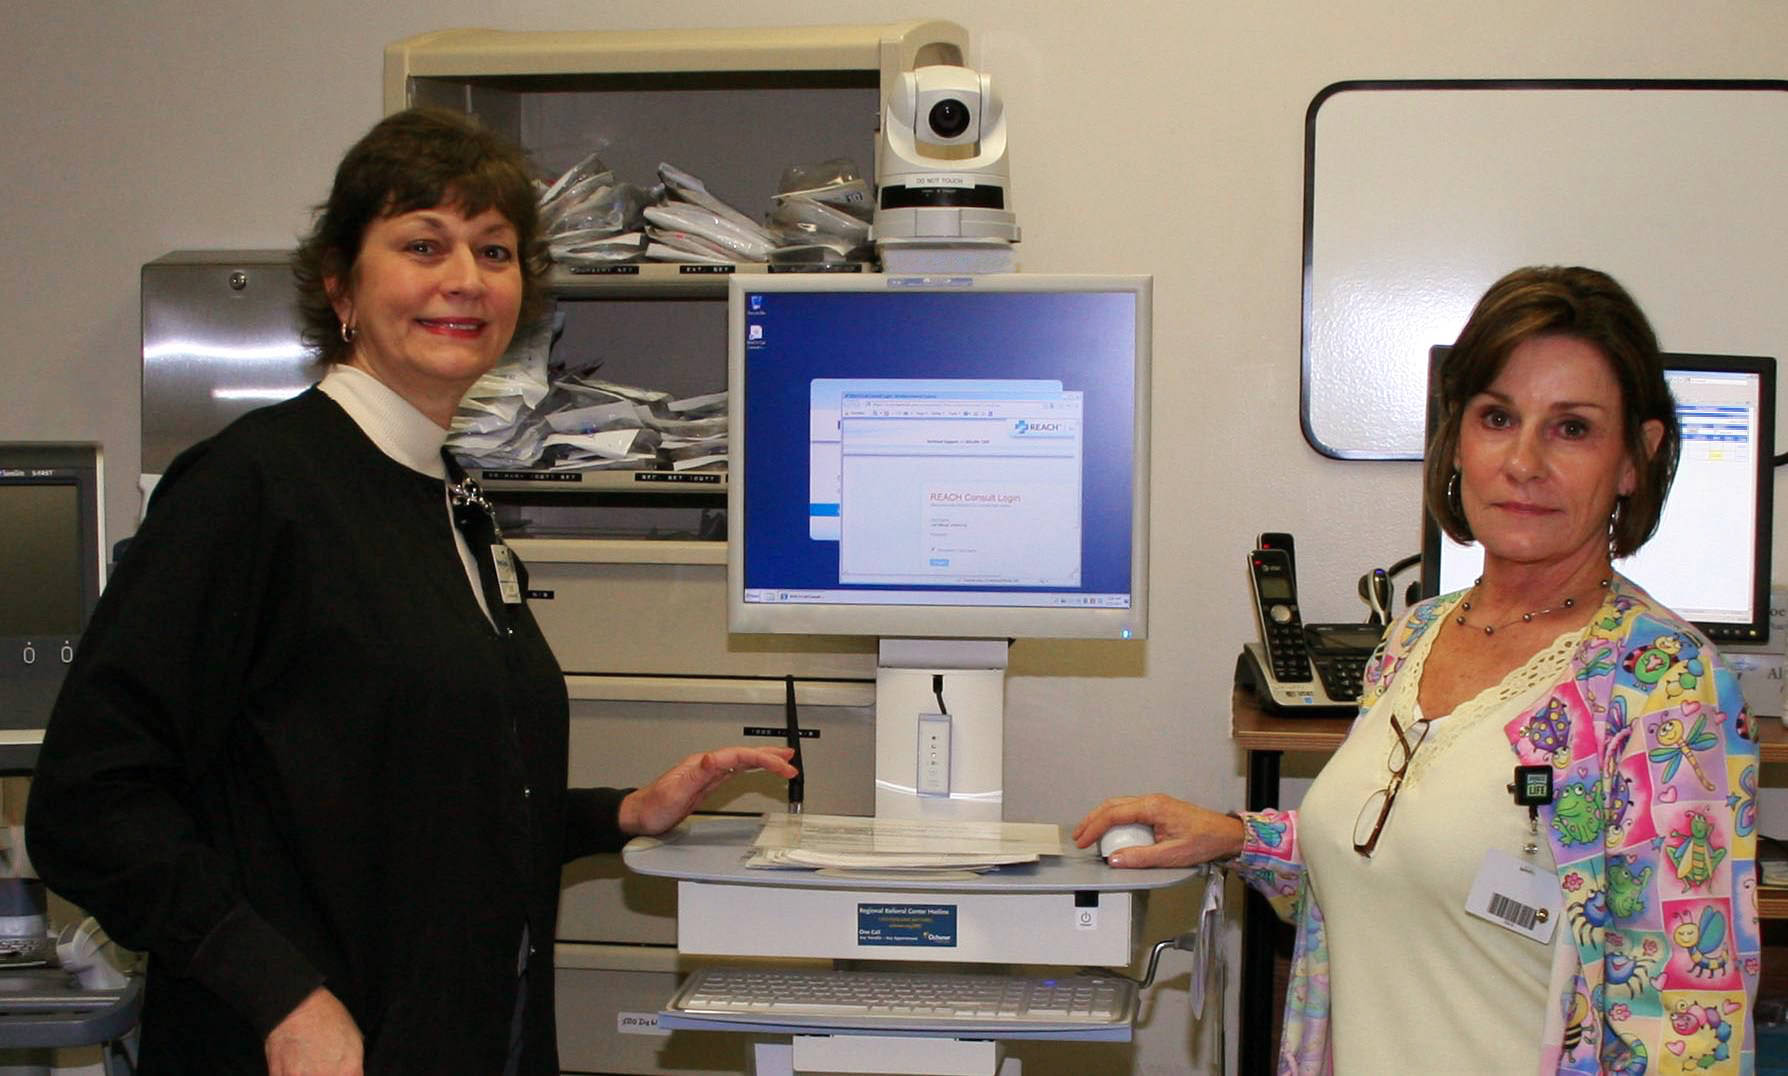 Elaine Hurme, PhD, RN and Debbie Bourgoyne, RN, ED Manager, demonstrate the new Telestroke technology located in the Emergency Department.